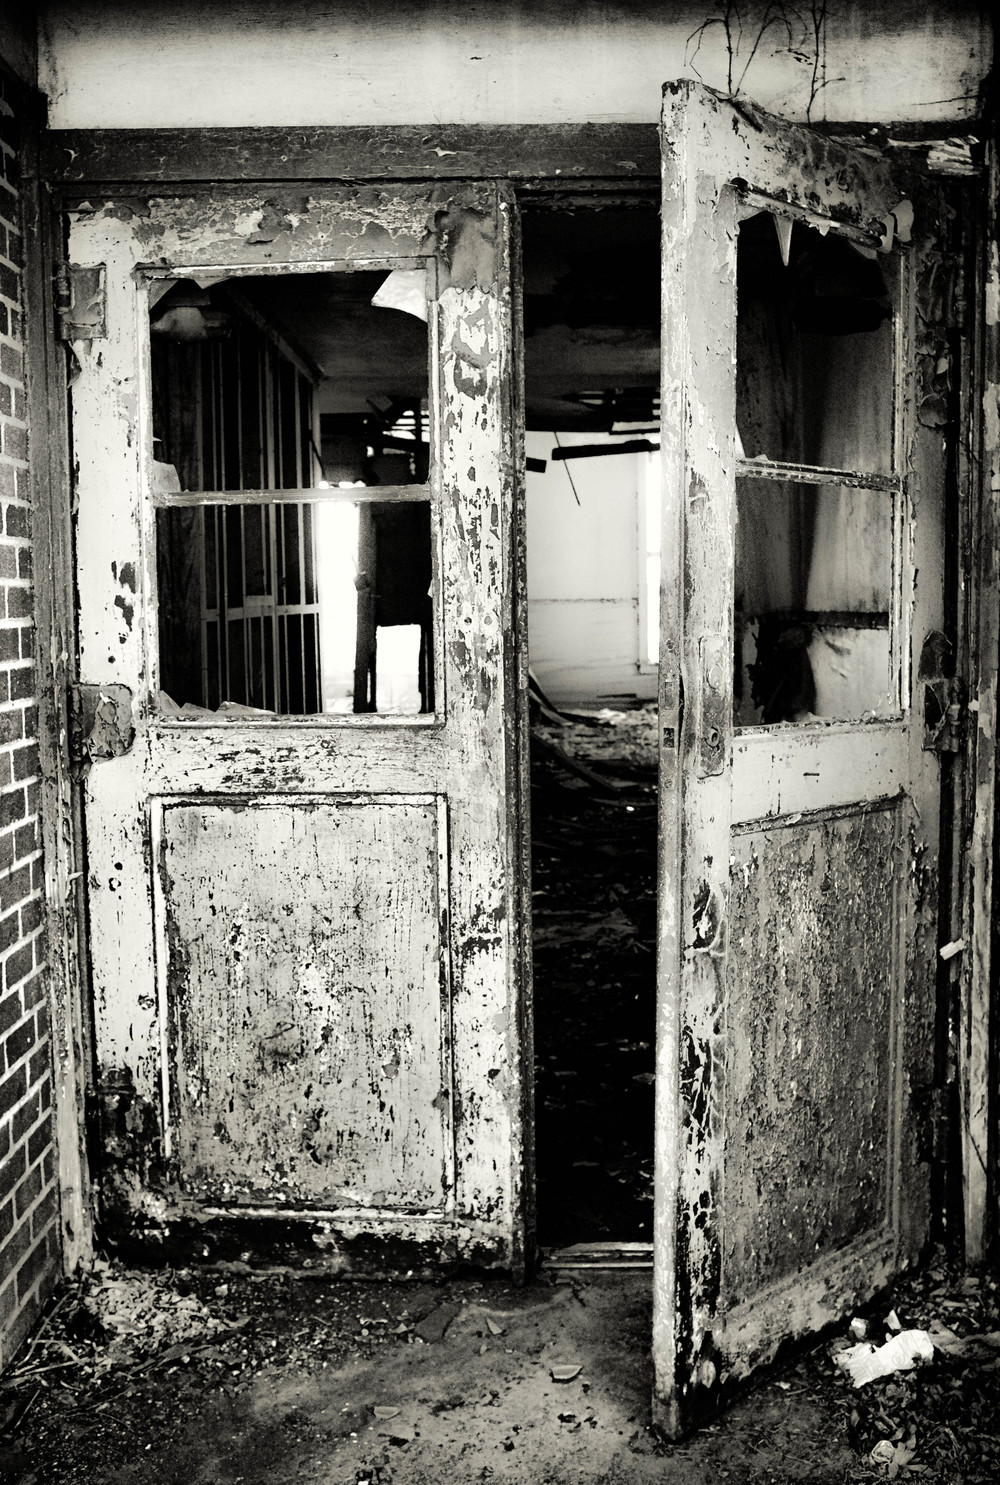 Doors to the abandoned school